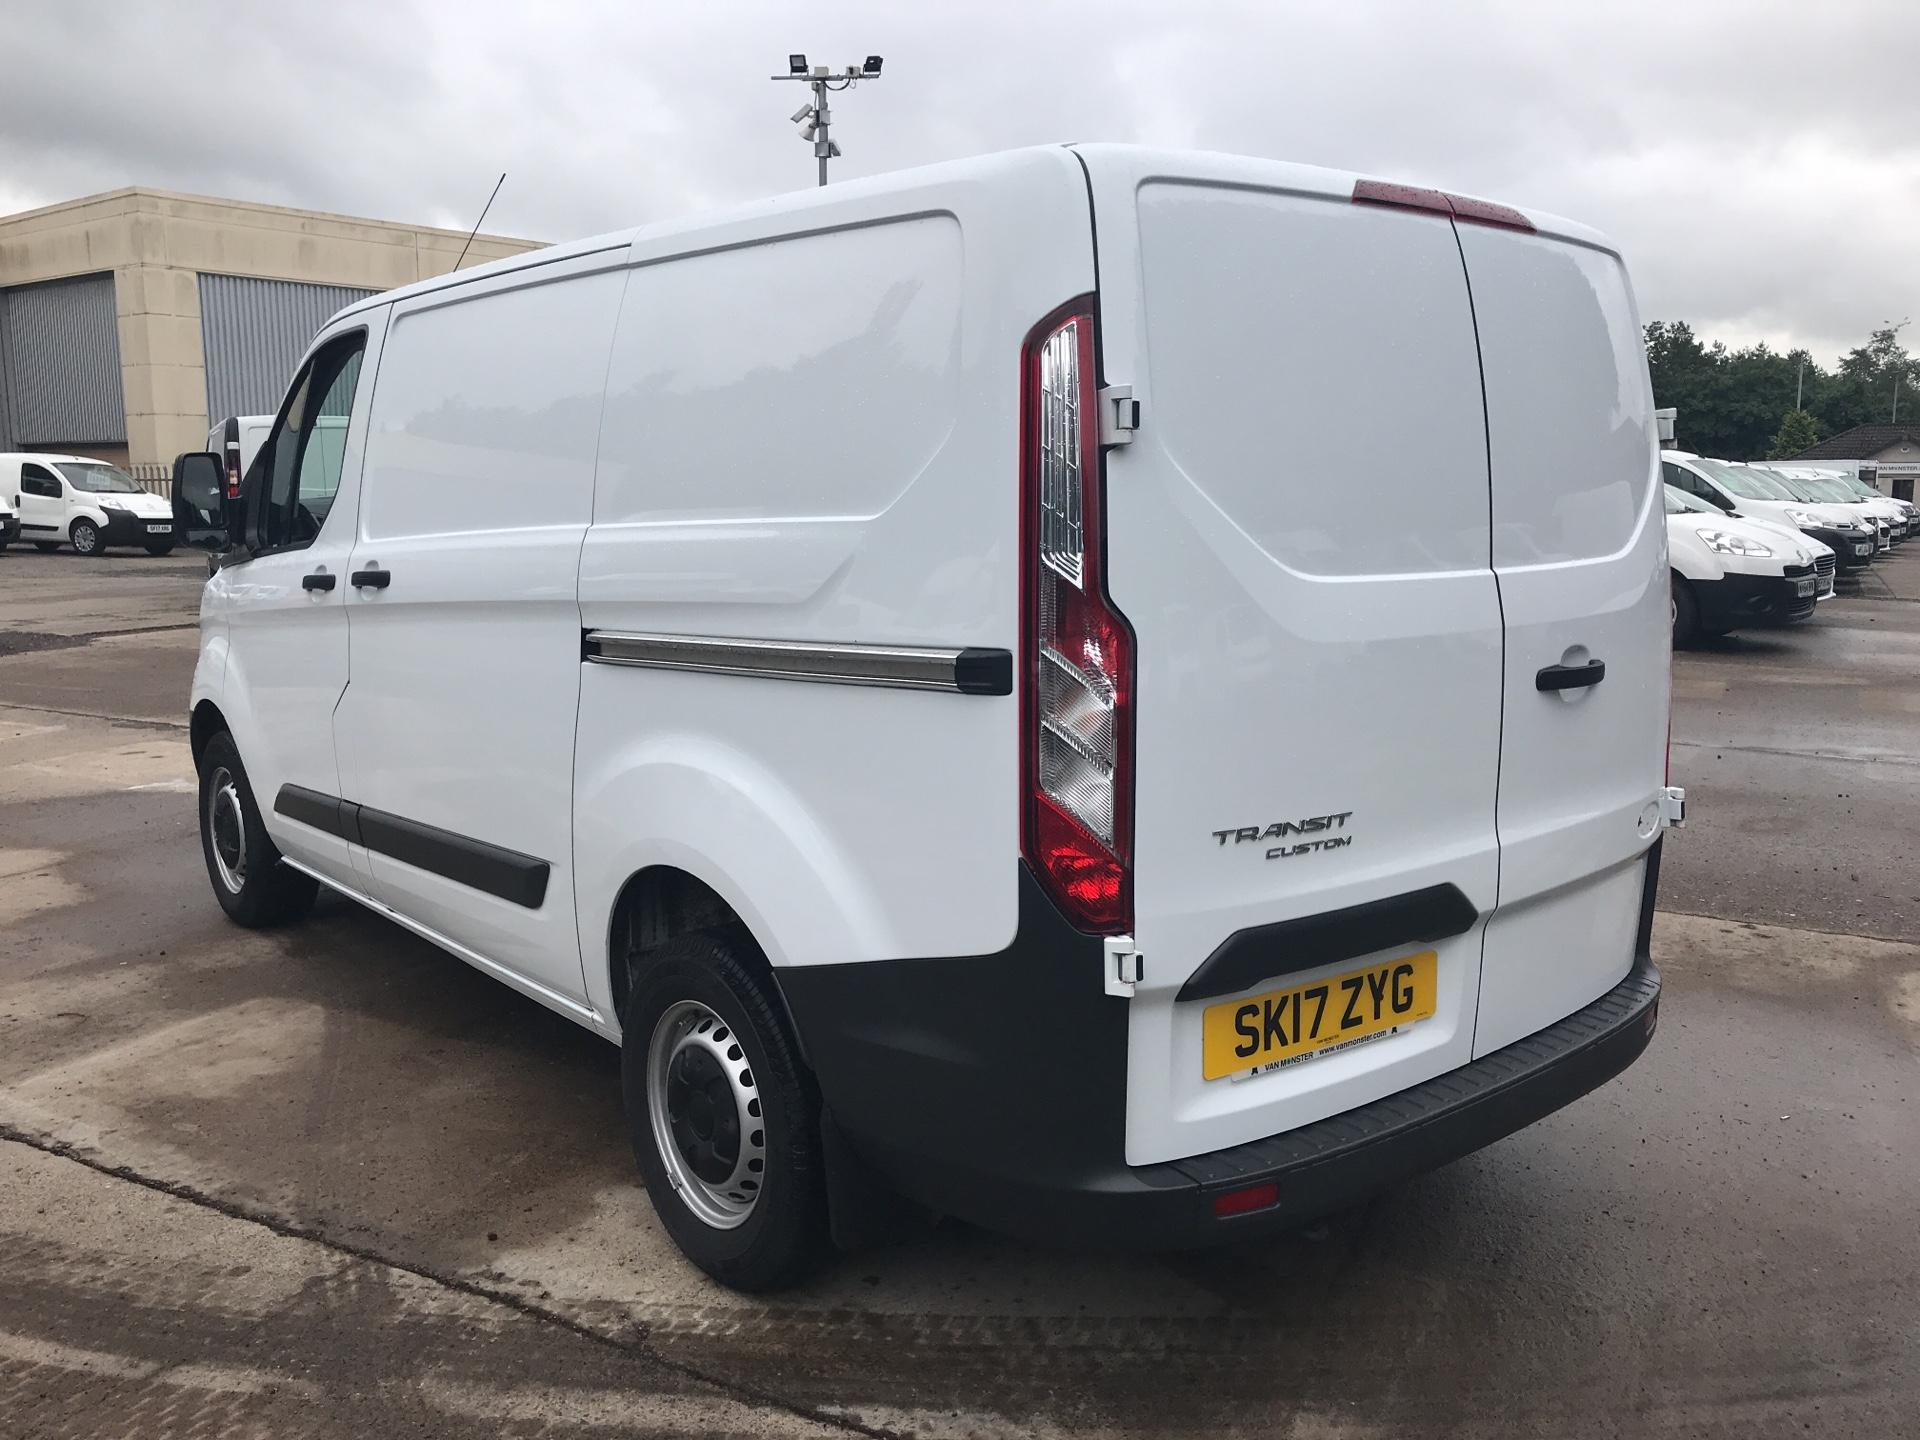 2017 Ford Transit Custom 270 L1 DIESEL FWD 2.2 TDCI 105PS LOW ROOF VAN EURO 5 (SK17ZYG) Thumbnail 5